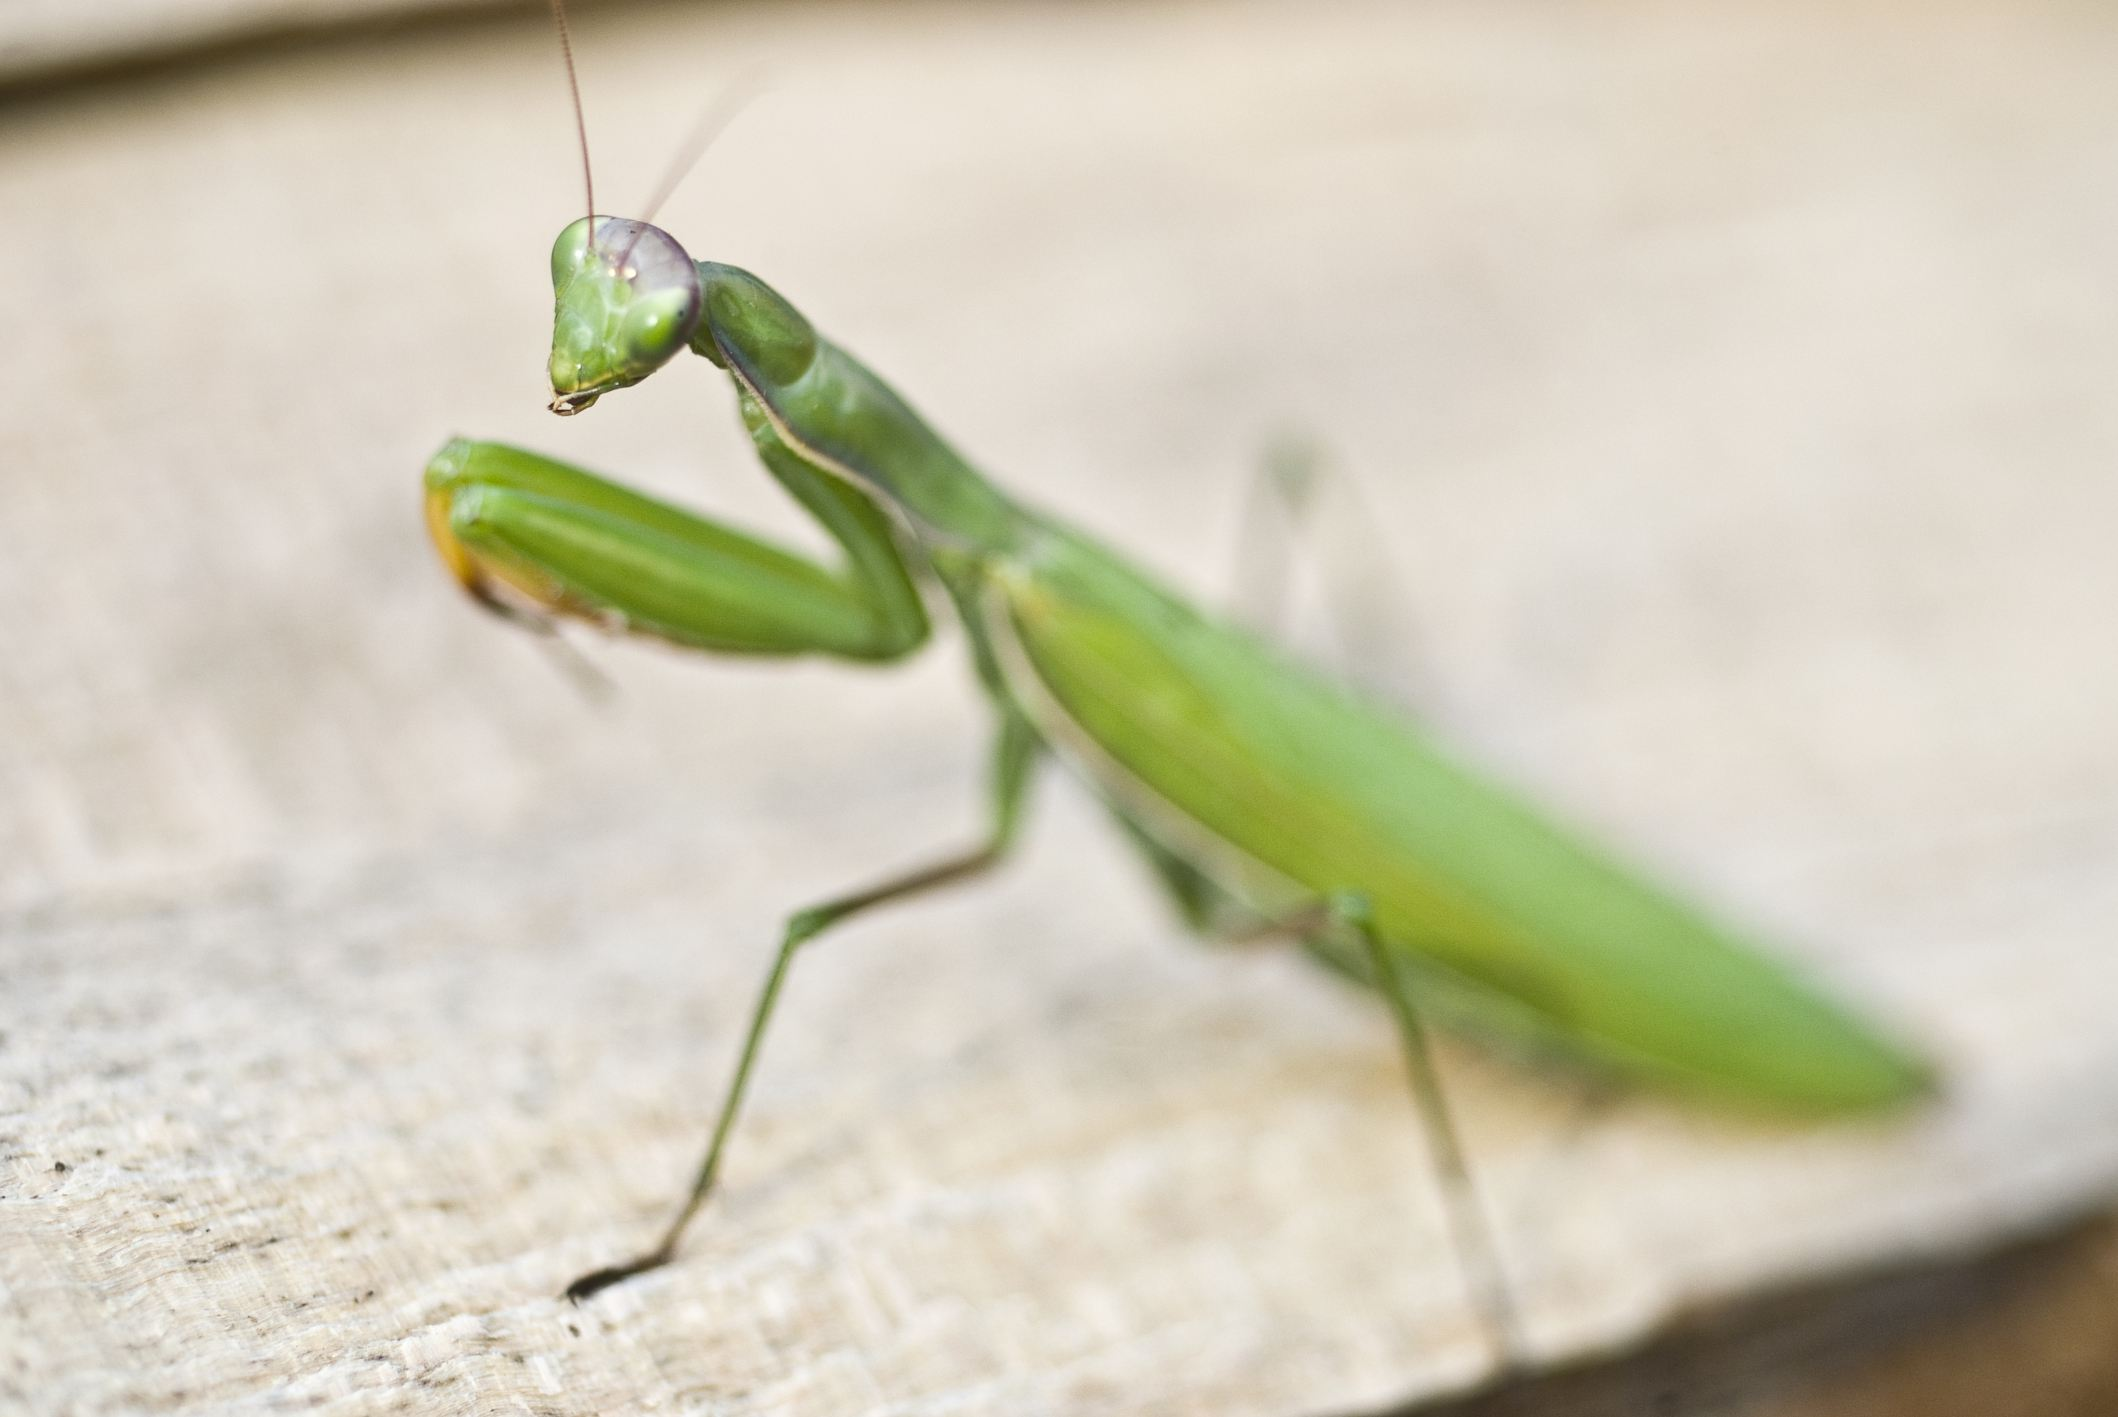 Praying mantis stands with arms ready to snare prey